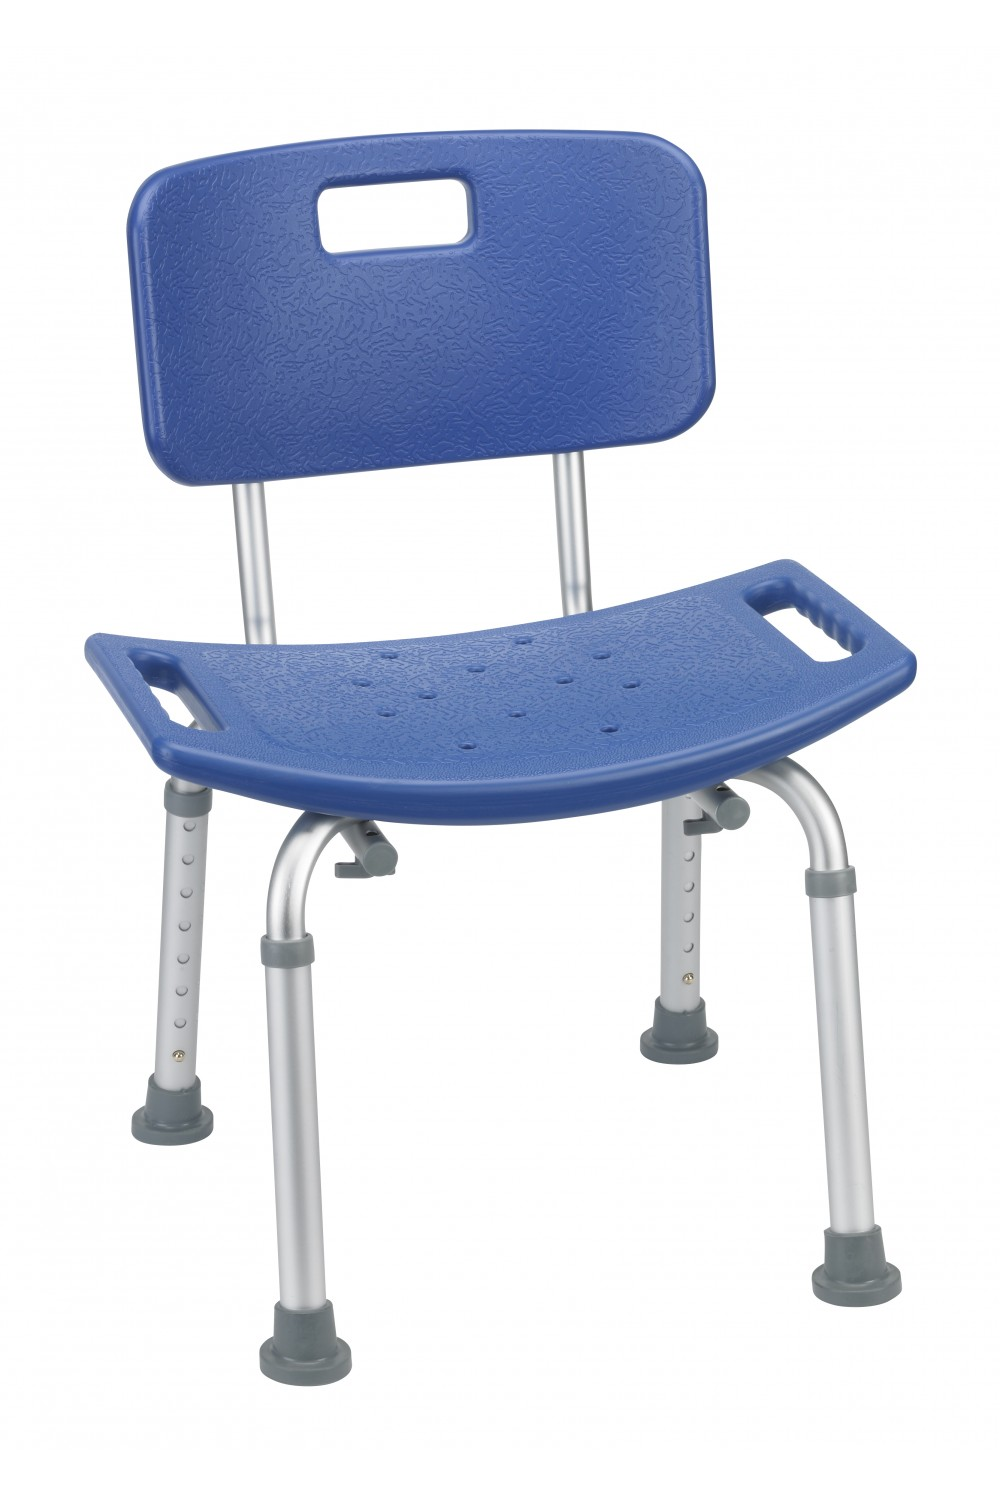 Blue Bathroom Safety Shower Tub Bench Chair With Back Gba Medical